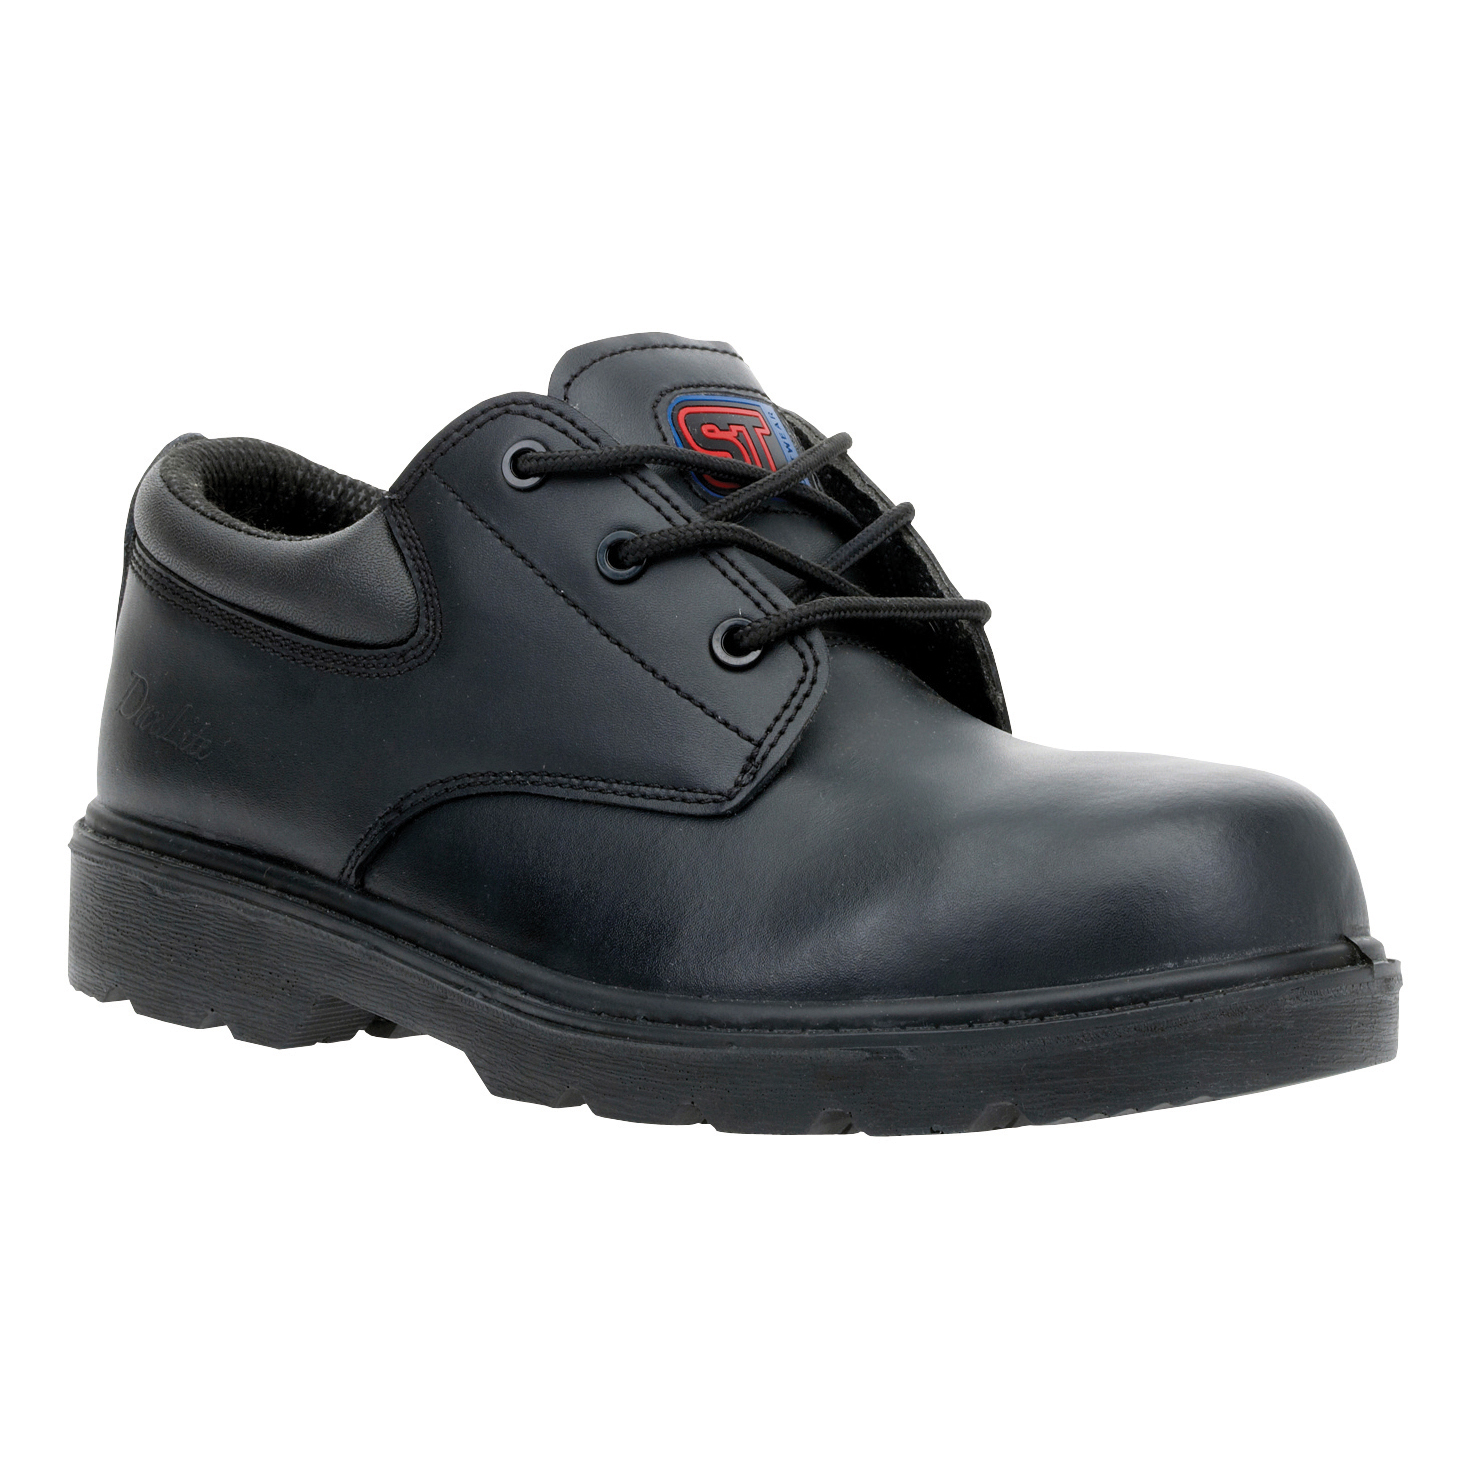 ST Dax Lite Air Comp' Shoe Metal Free Safety Toecap & Midsole Size 12 Blk Ref 90867 *Approx 3 Day L/Time*